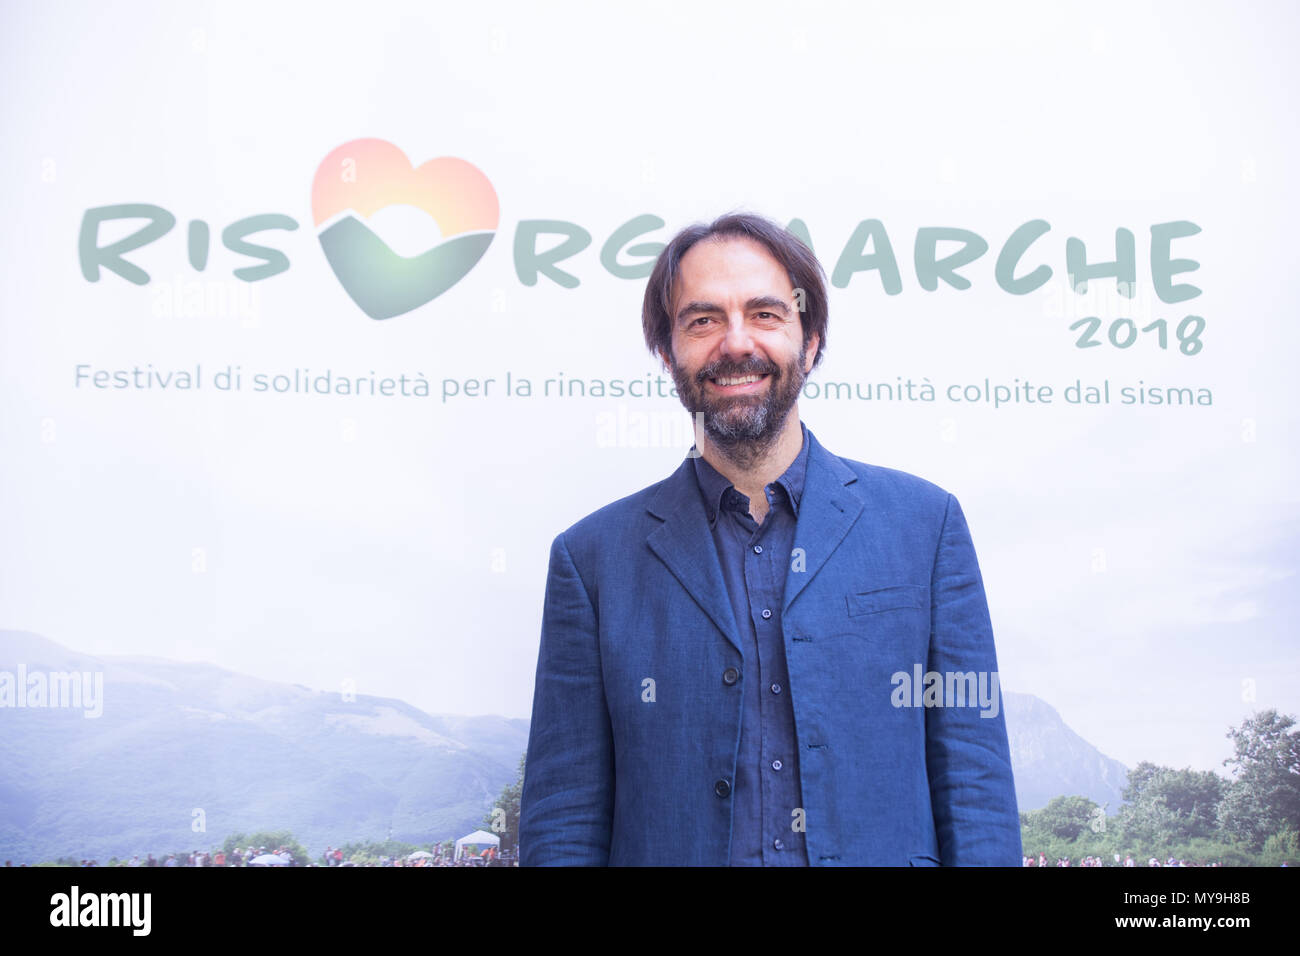 Rome, Italy. 06th June, 2018. The Italian actor and organizer Neri Marcorè presents the 2018 edition of the RisorgiMarche Festival to the press, in which great Italian singers will perform in the evocative natural frames of the Marche Region and, in particular, in those territories most affected by the earthquake of 2016 Credit: Matteo Nardone/Pacific Press/Alamy Live News Stock Photo